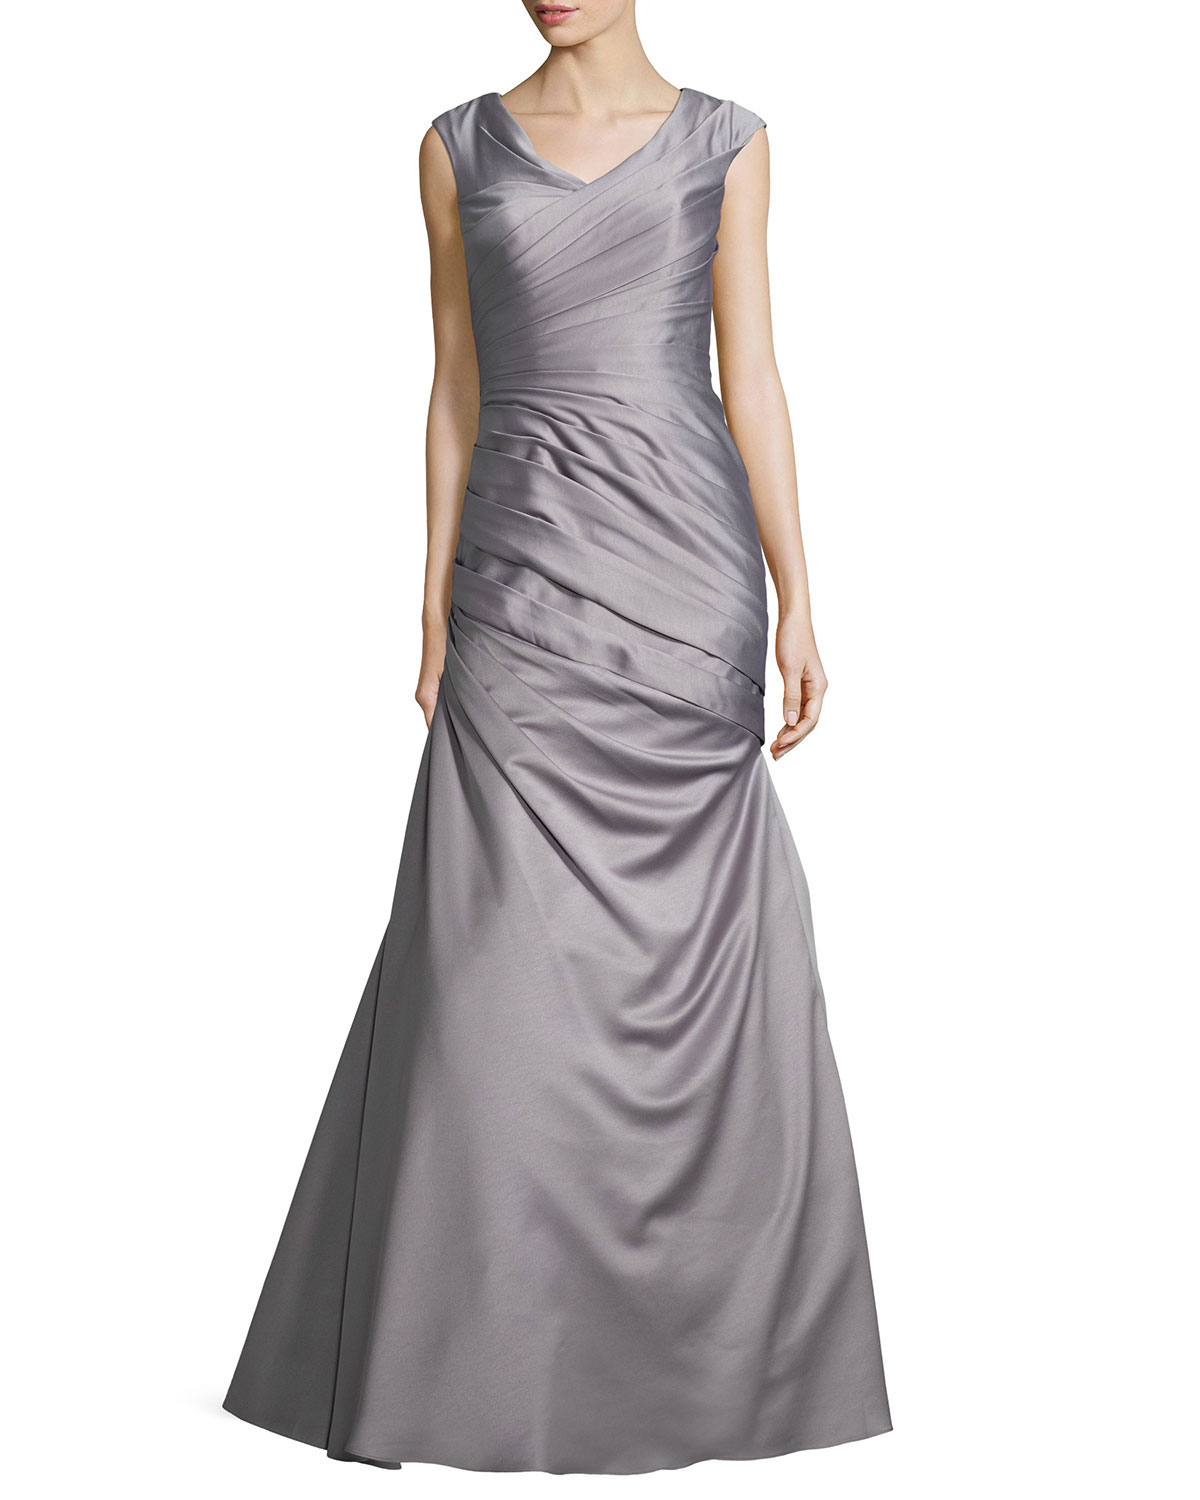 La Femme Cap-Sleeve Ruched Mermaid Gown